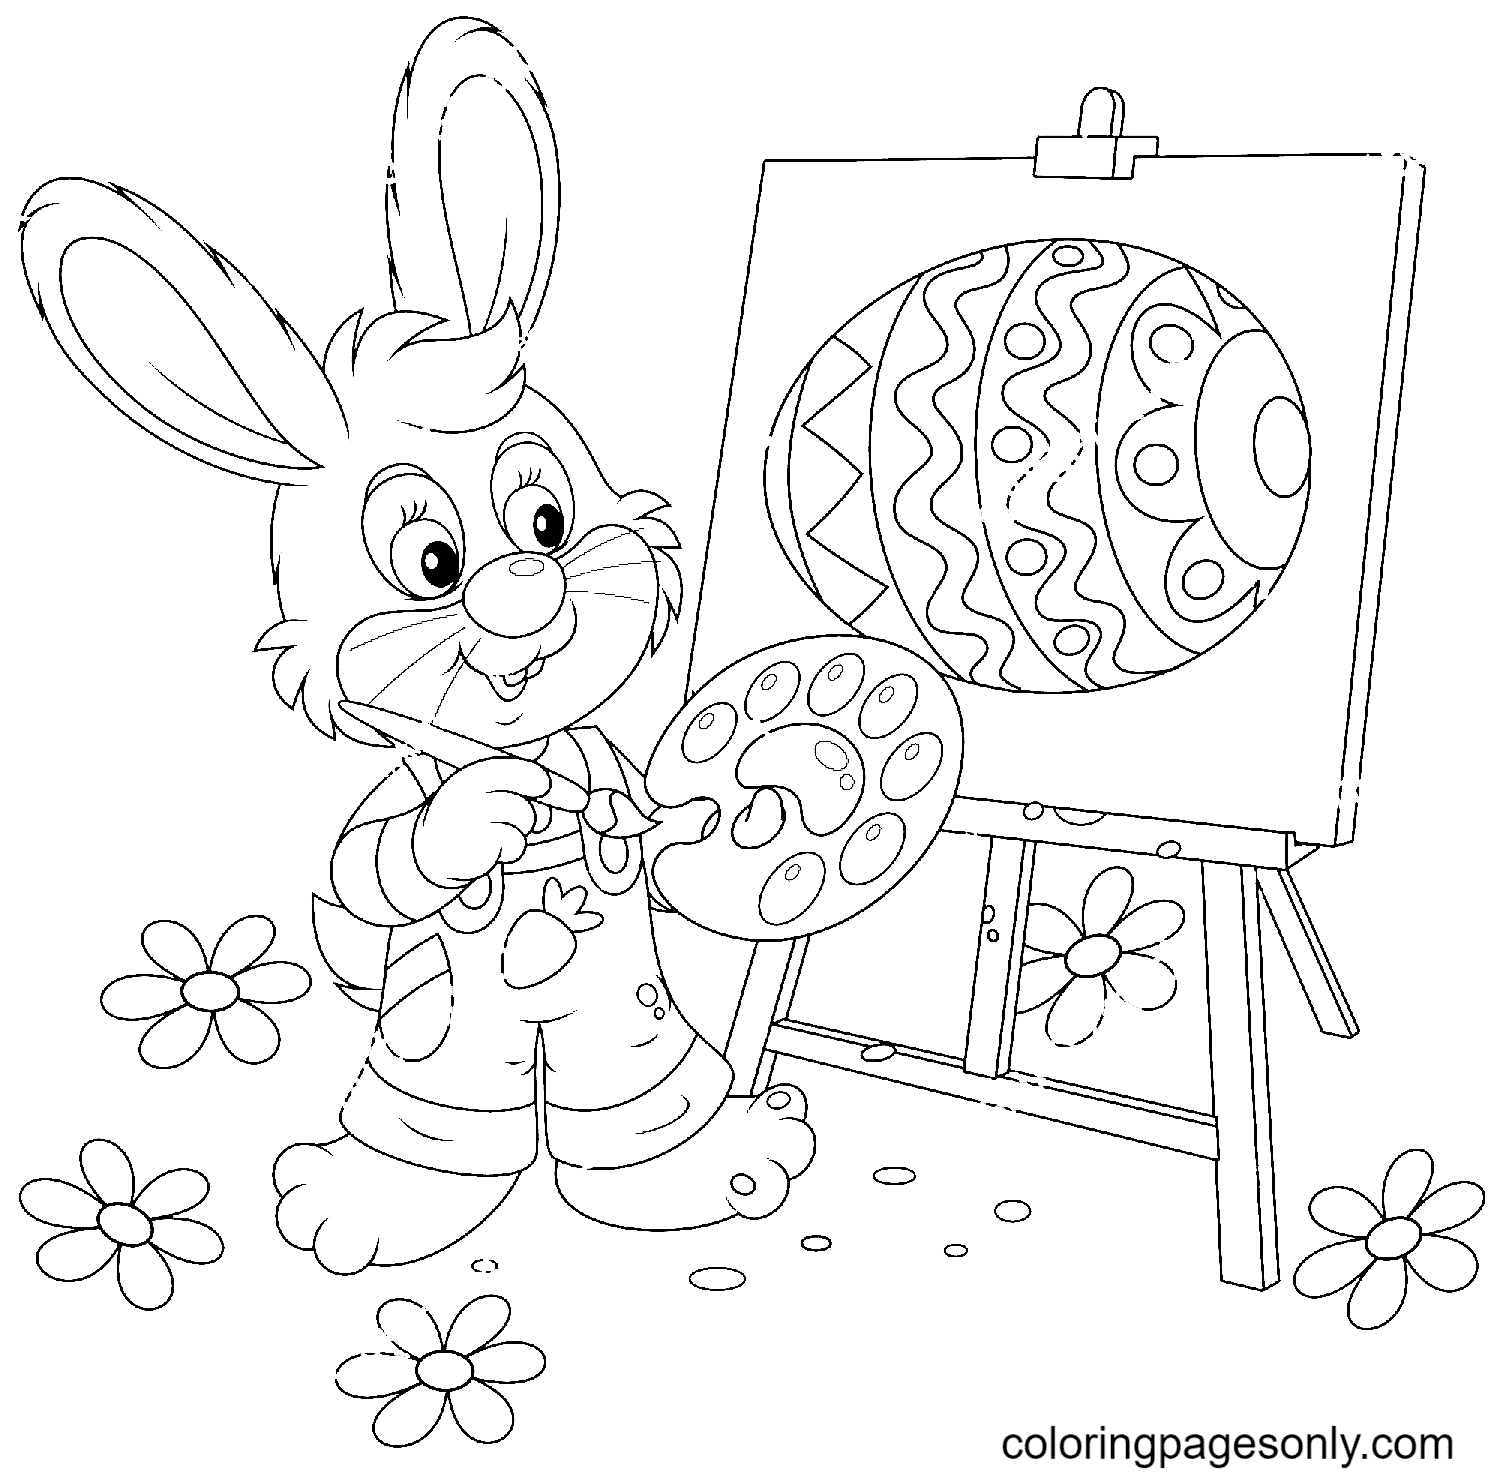 Easter Bunny Painter Coloring Page